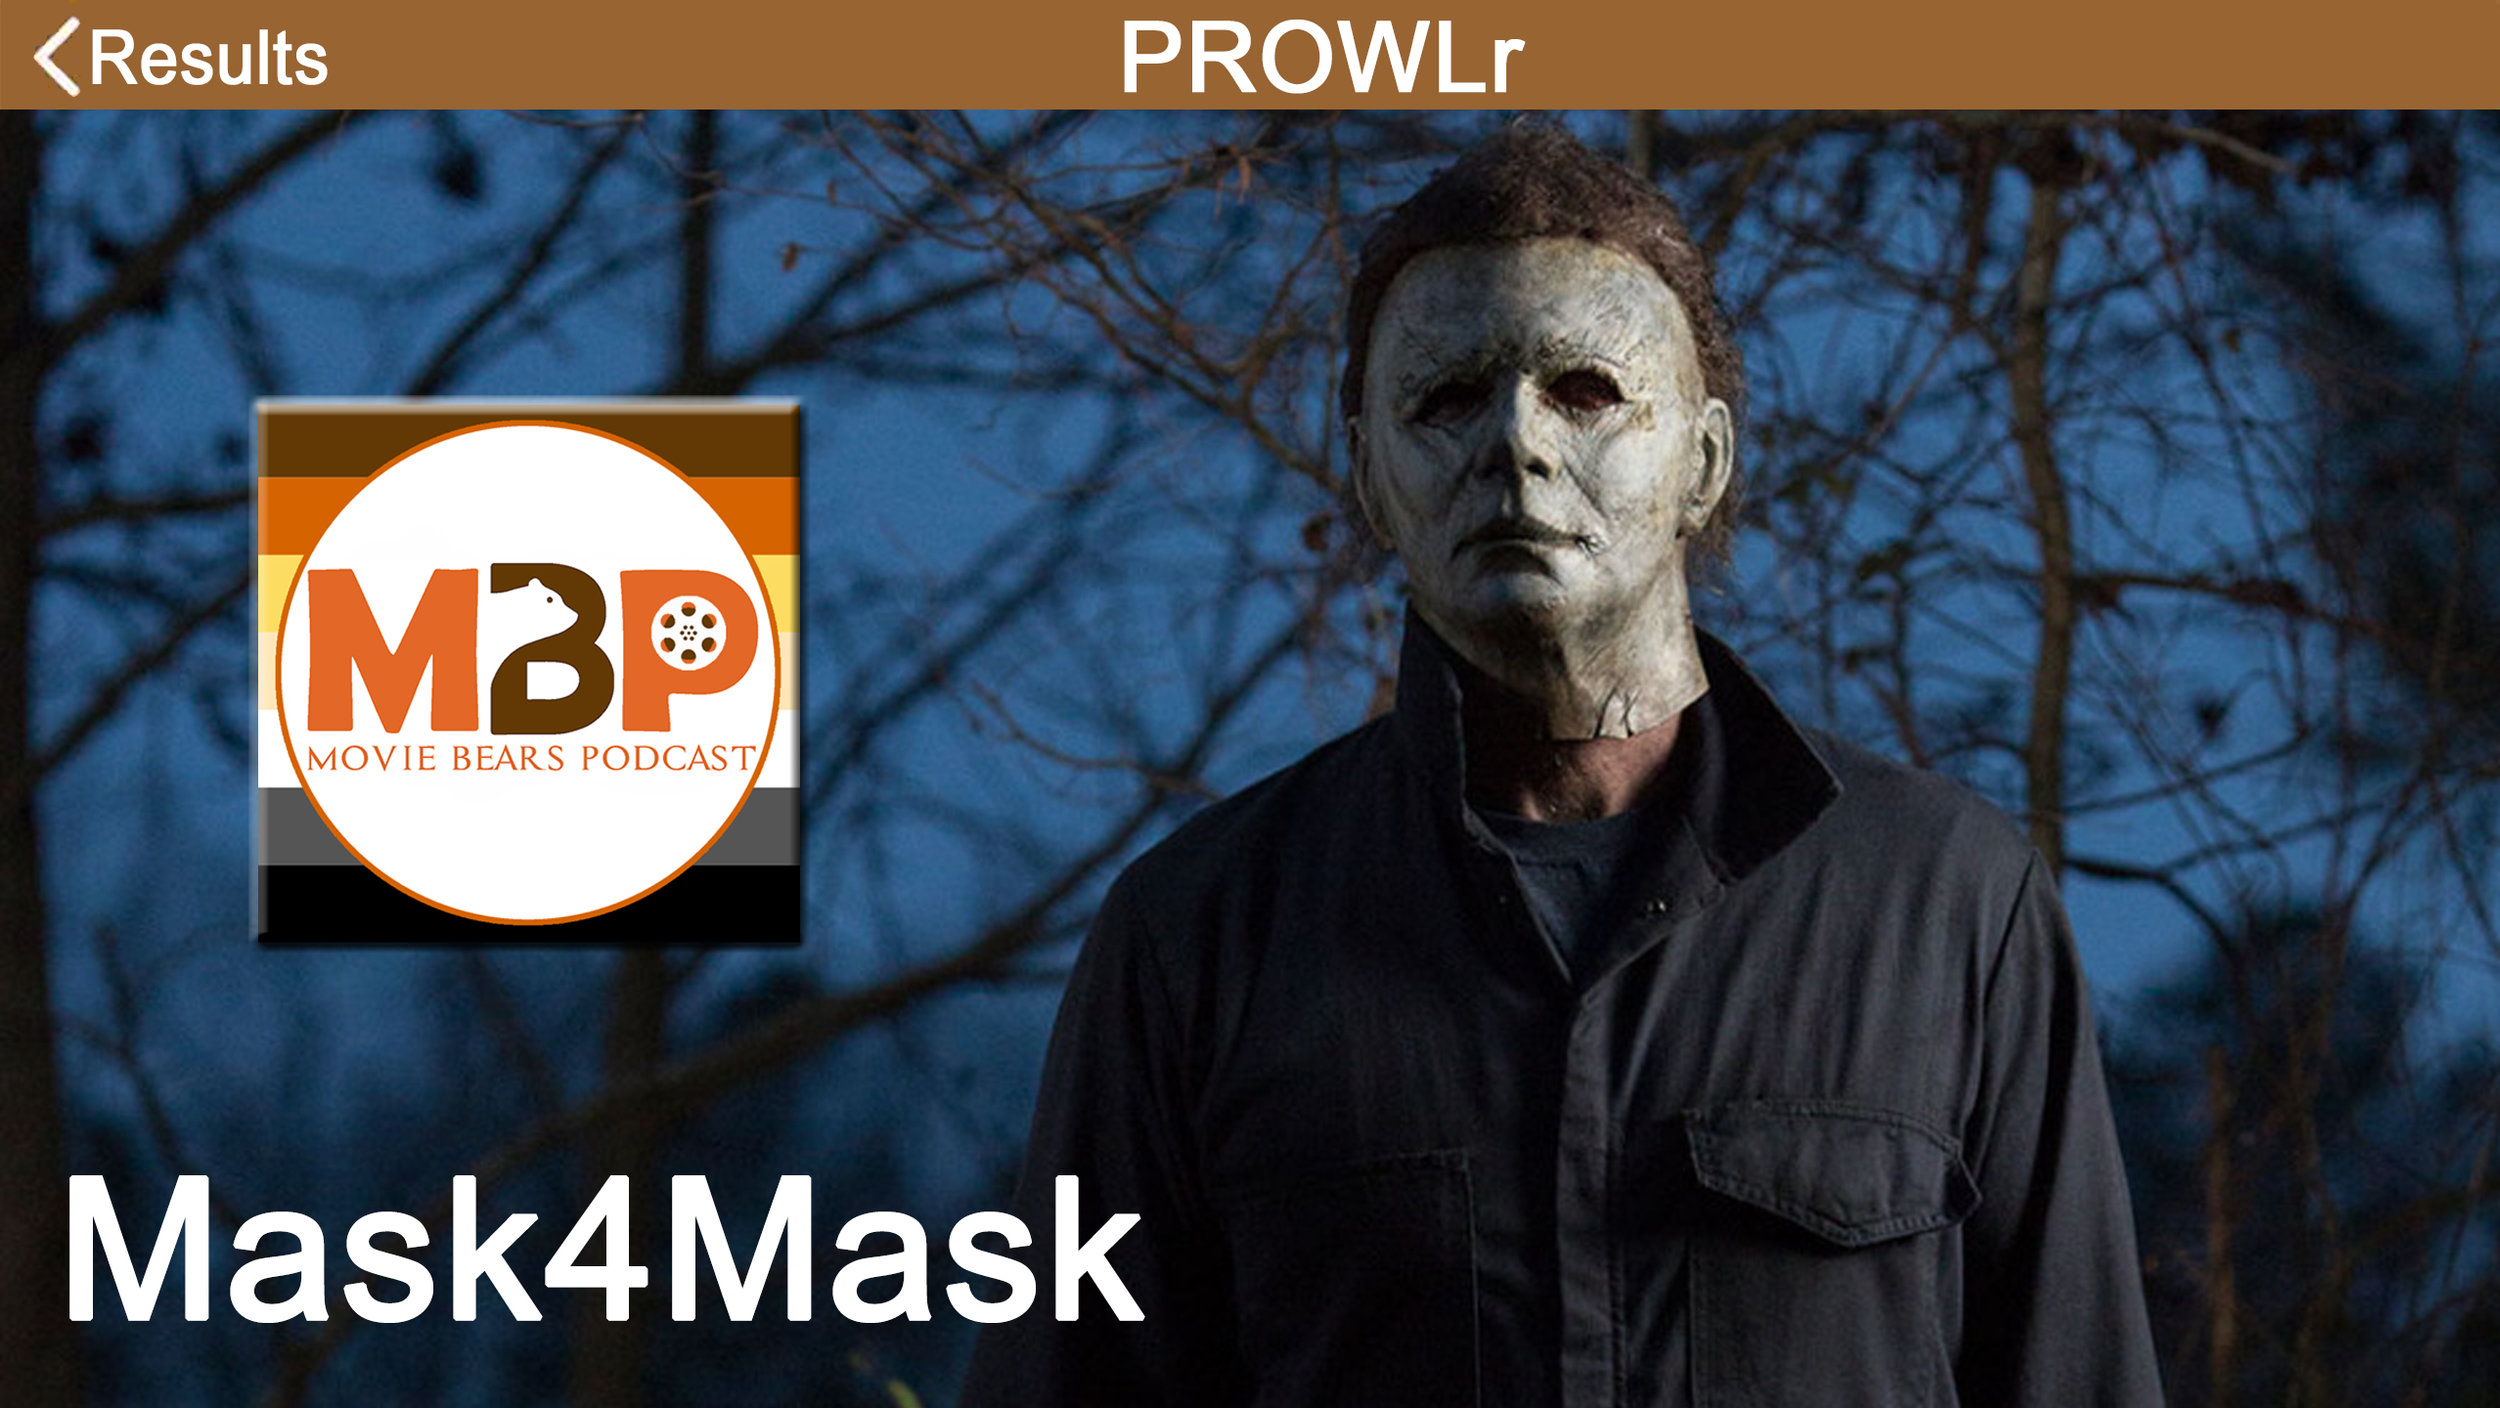 MBP e299 - 'Halloween' (10/31/18)    Happy Halloween! (or even a little bit after Halloween) Watch out for goblins, ghouls, and knife-wielding serial killers as we celebrate our favorite time of year. And what better way to celebrate than with a review of 'Halloween' (2018) the latest Michael Myers slasher flick? Check out this episode to hear our thoughts on the latest sequel to this hallowed horror franchise.